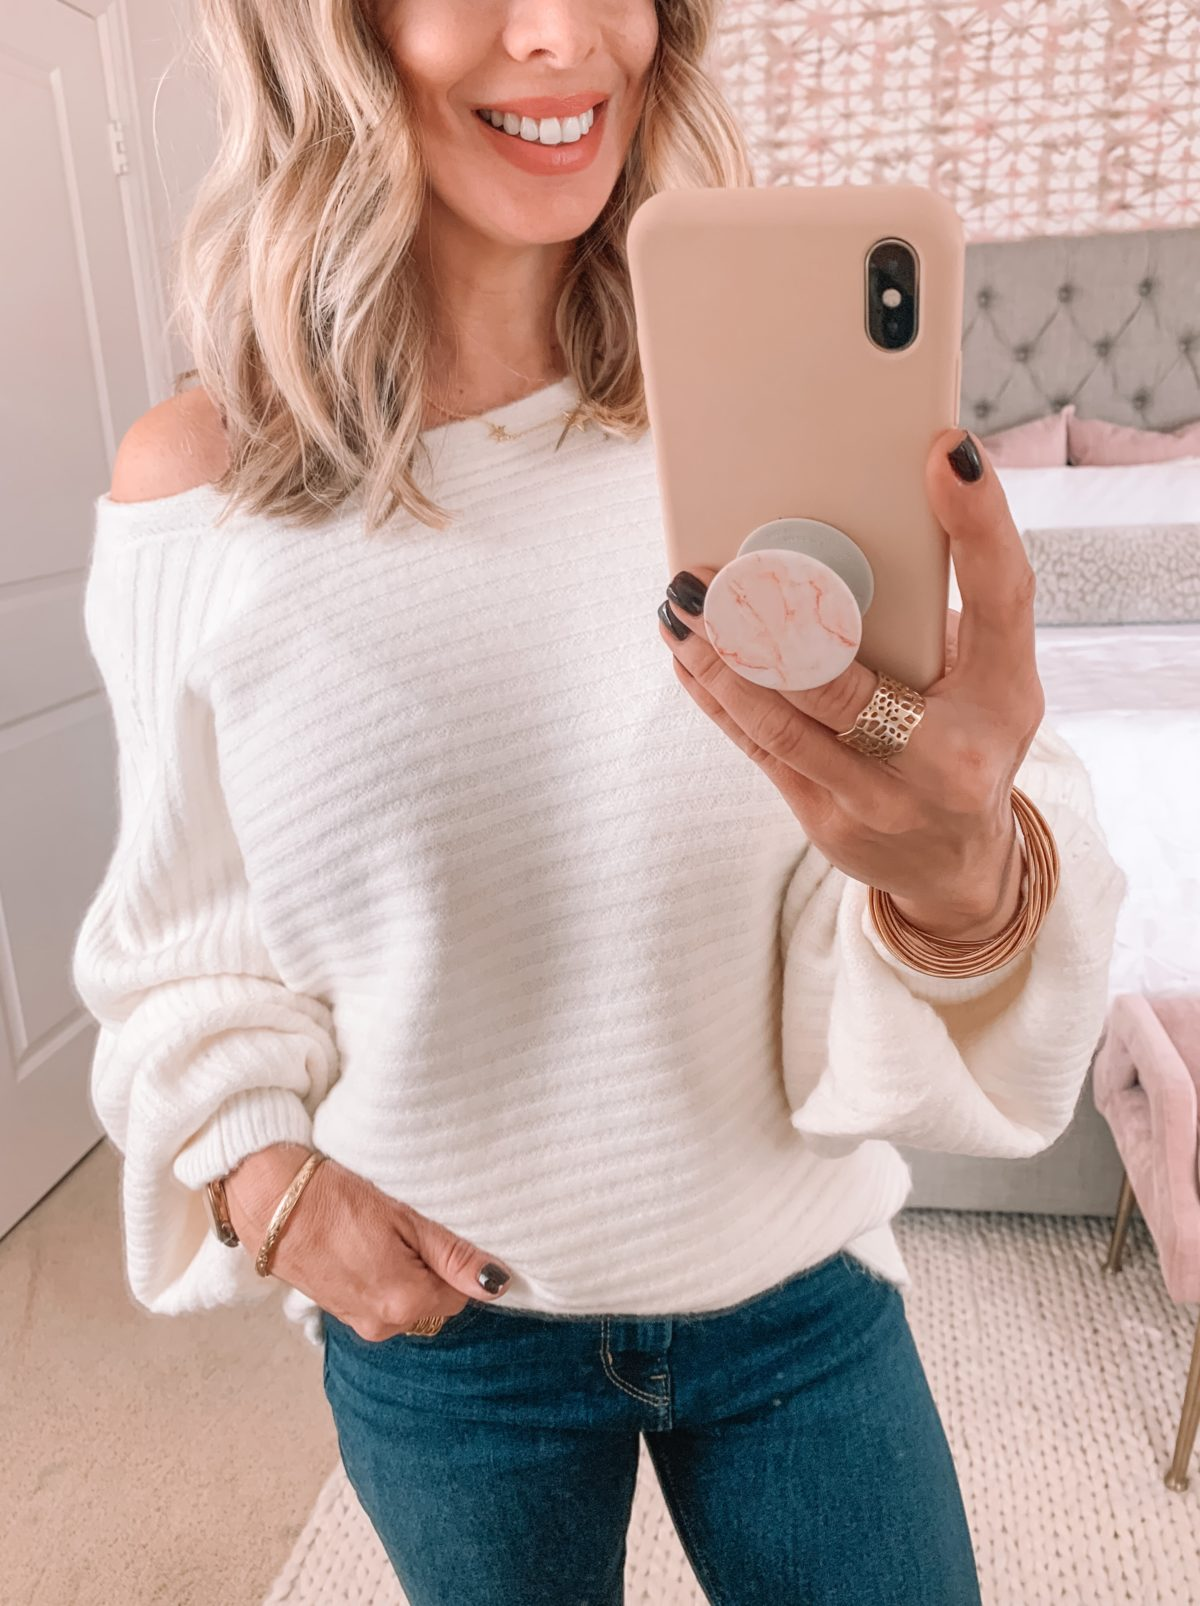 Amazon Fashion Faves, sweater, jeans